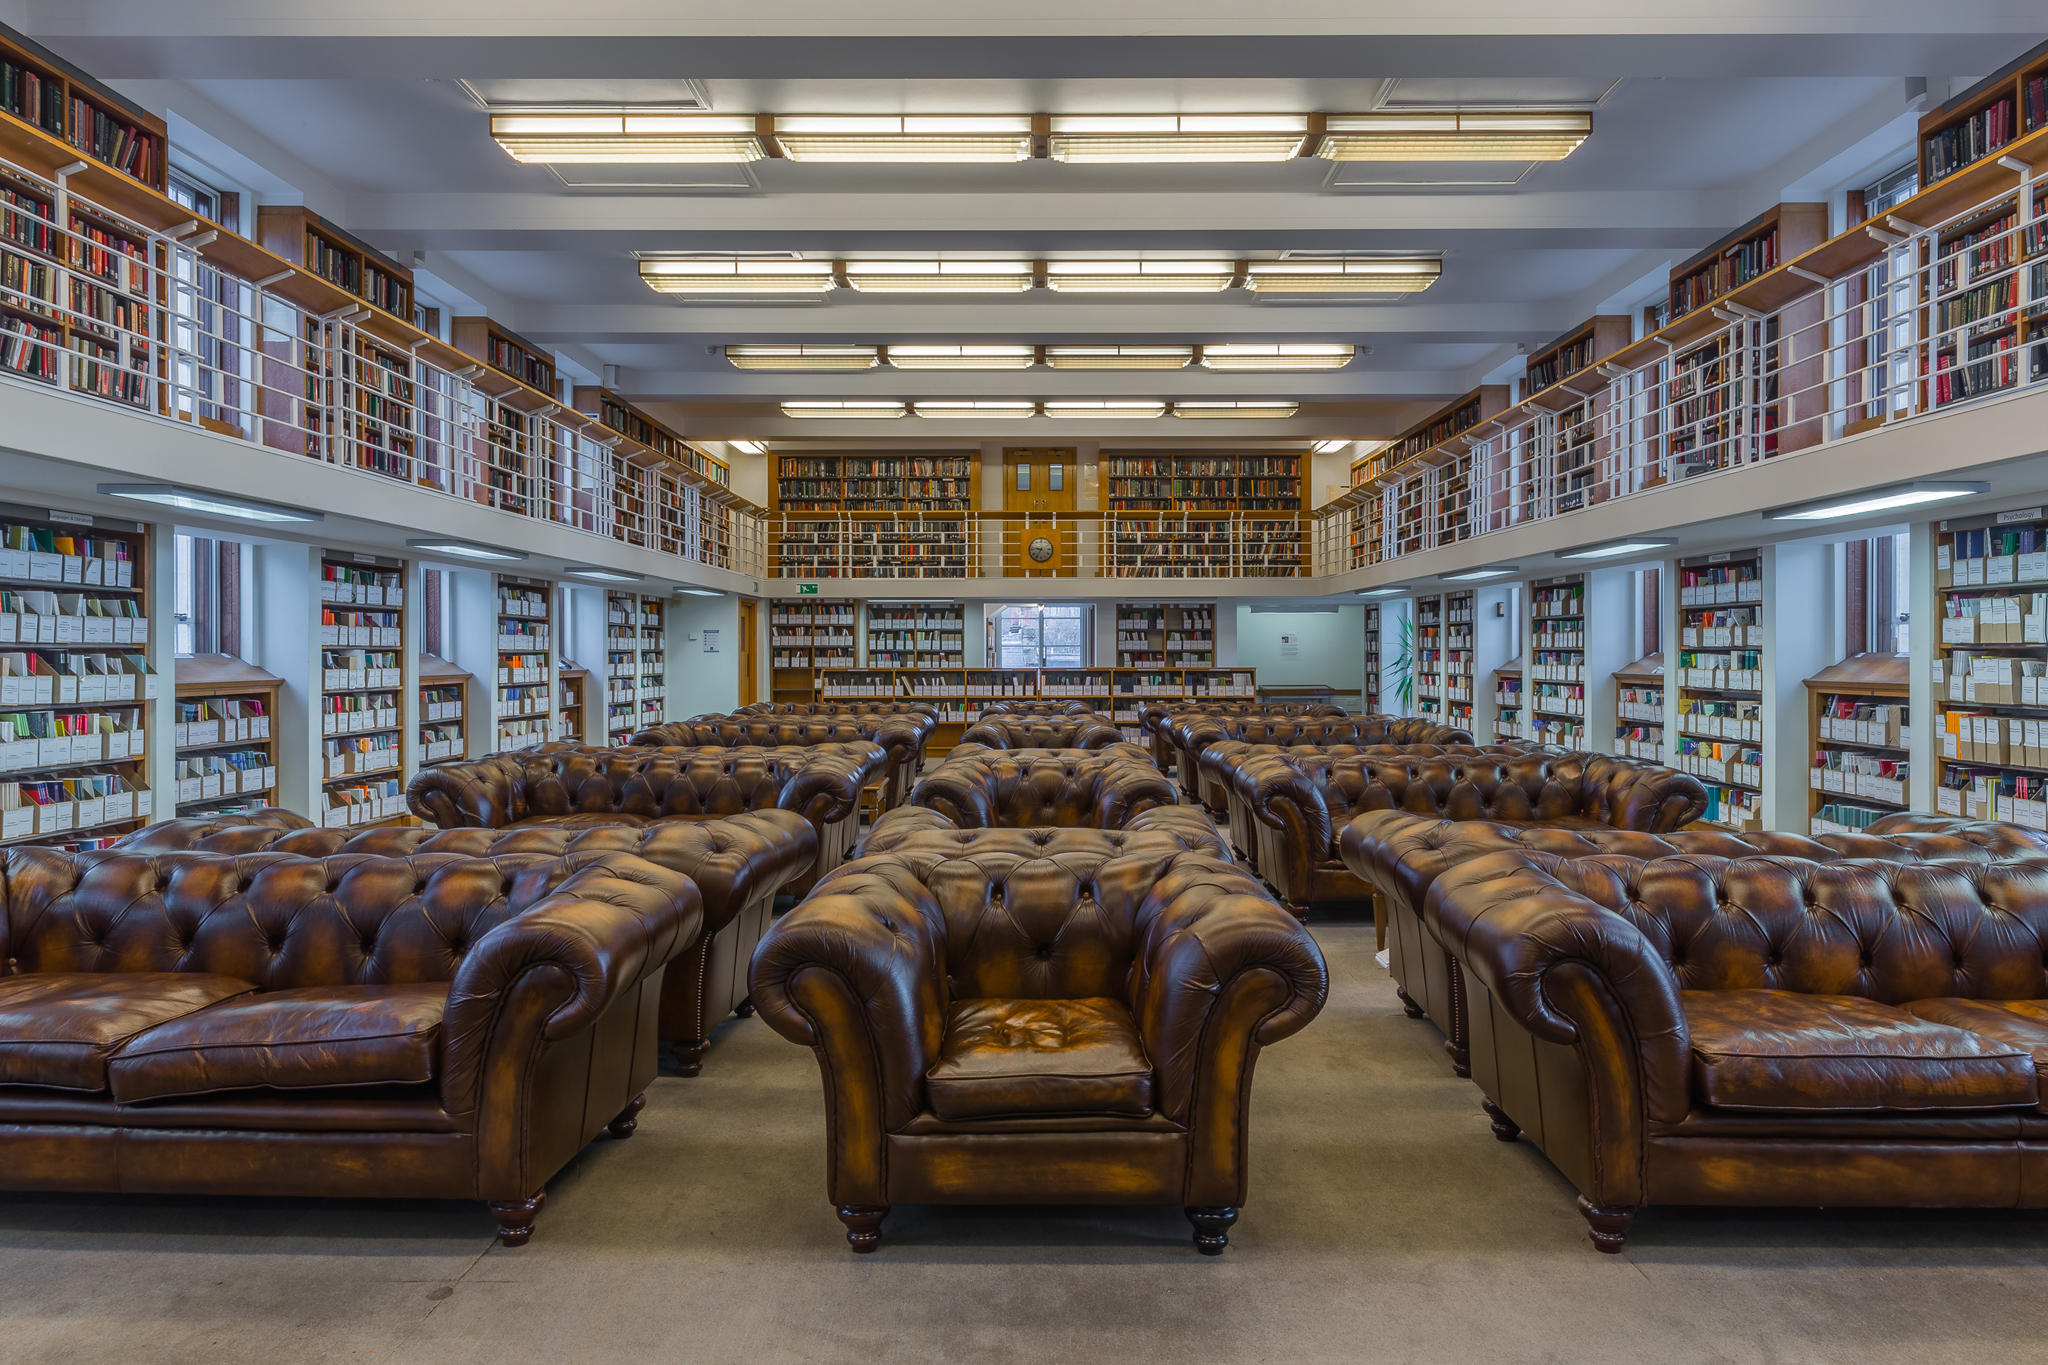 Senate House Library